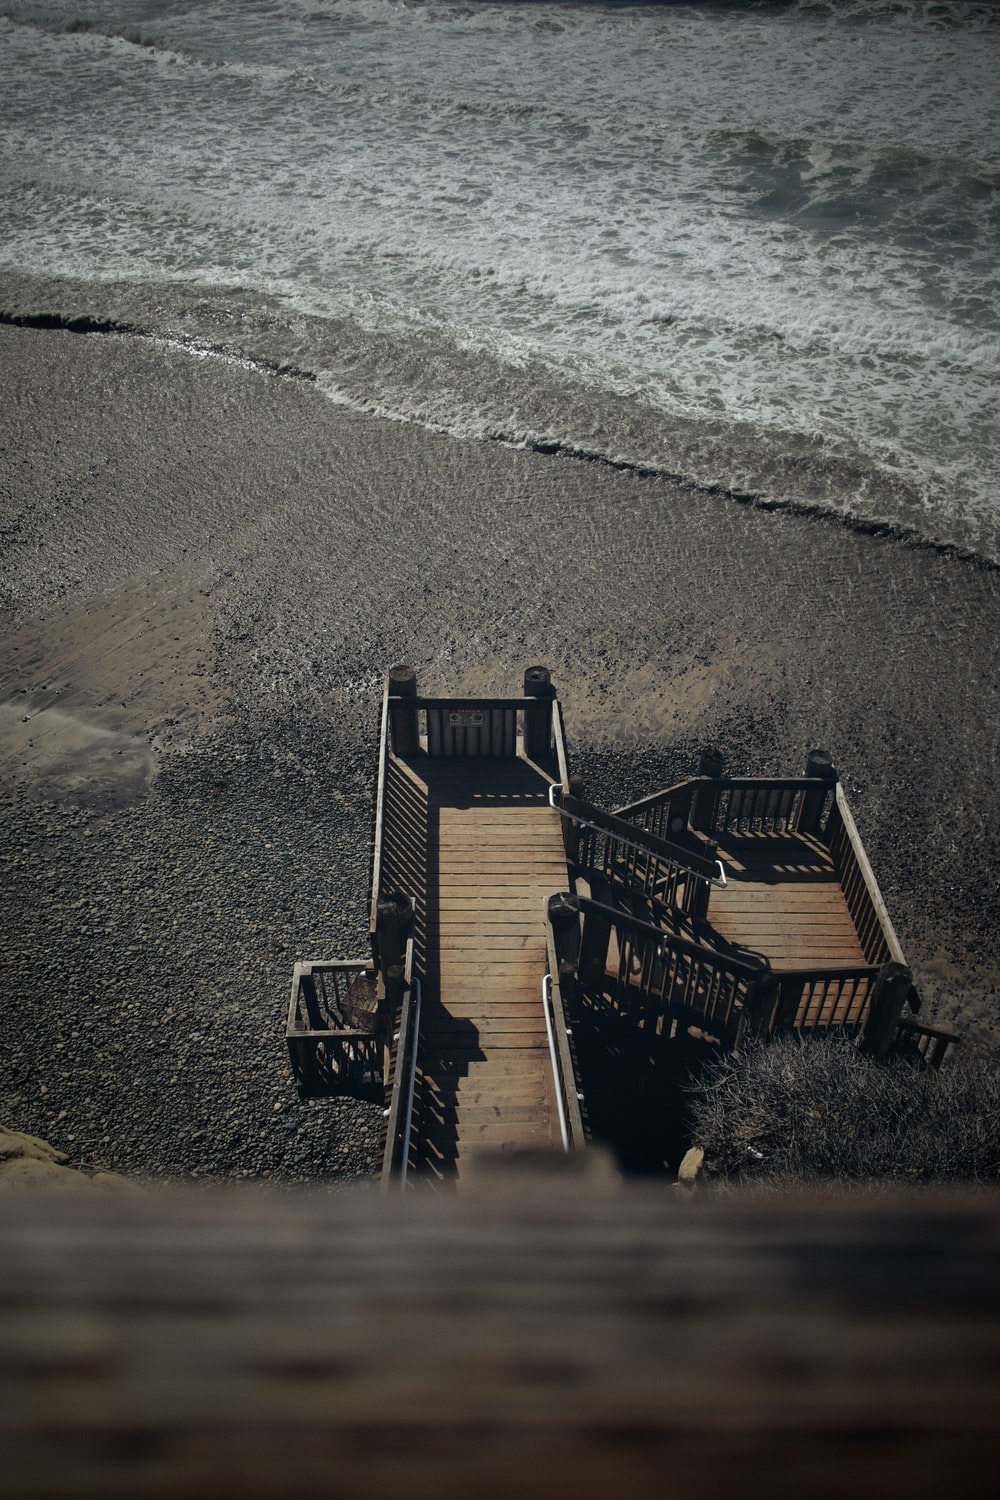 brown wooden chairs on beach shore during daytime